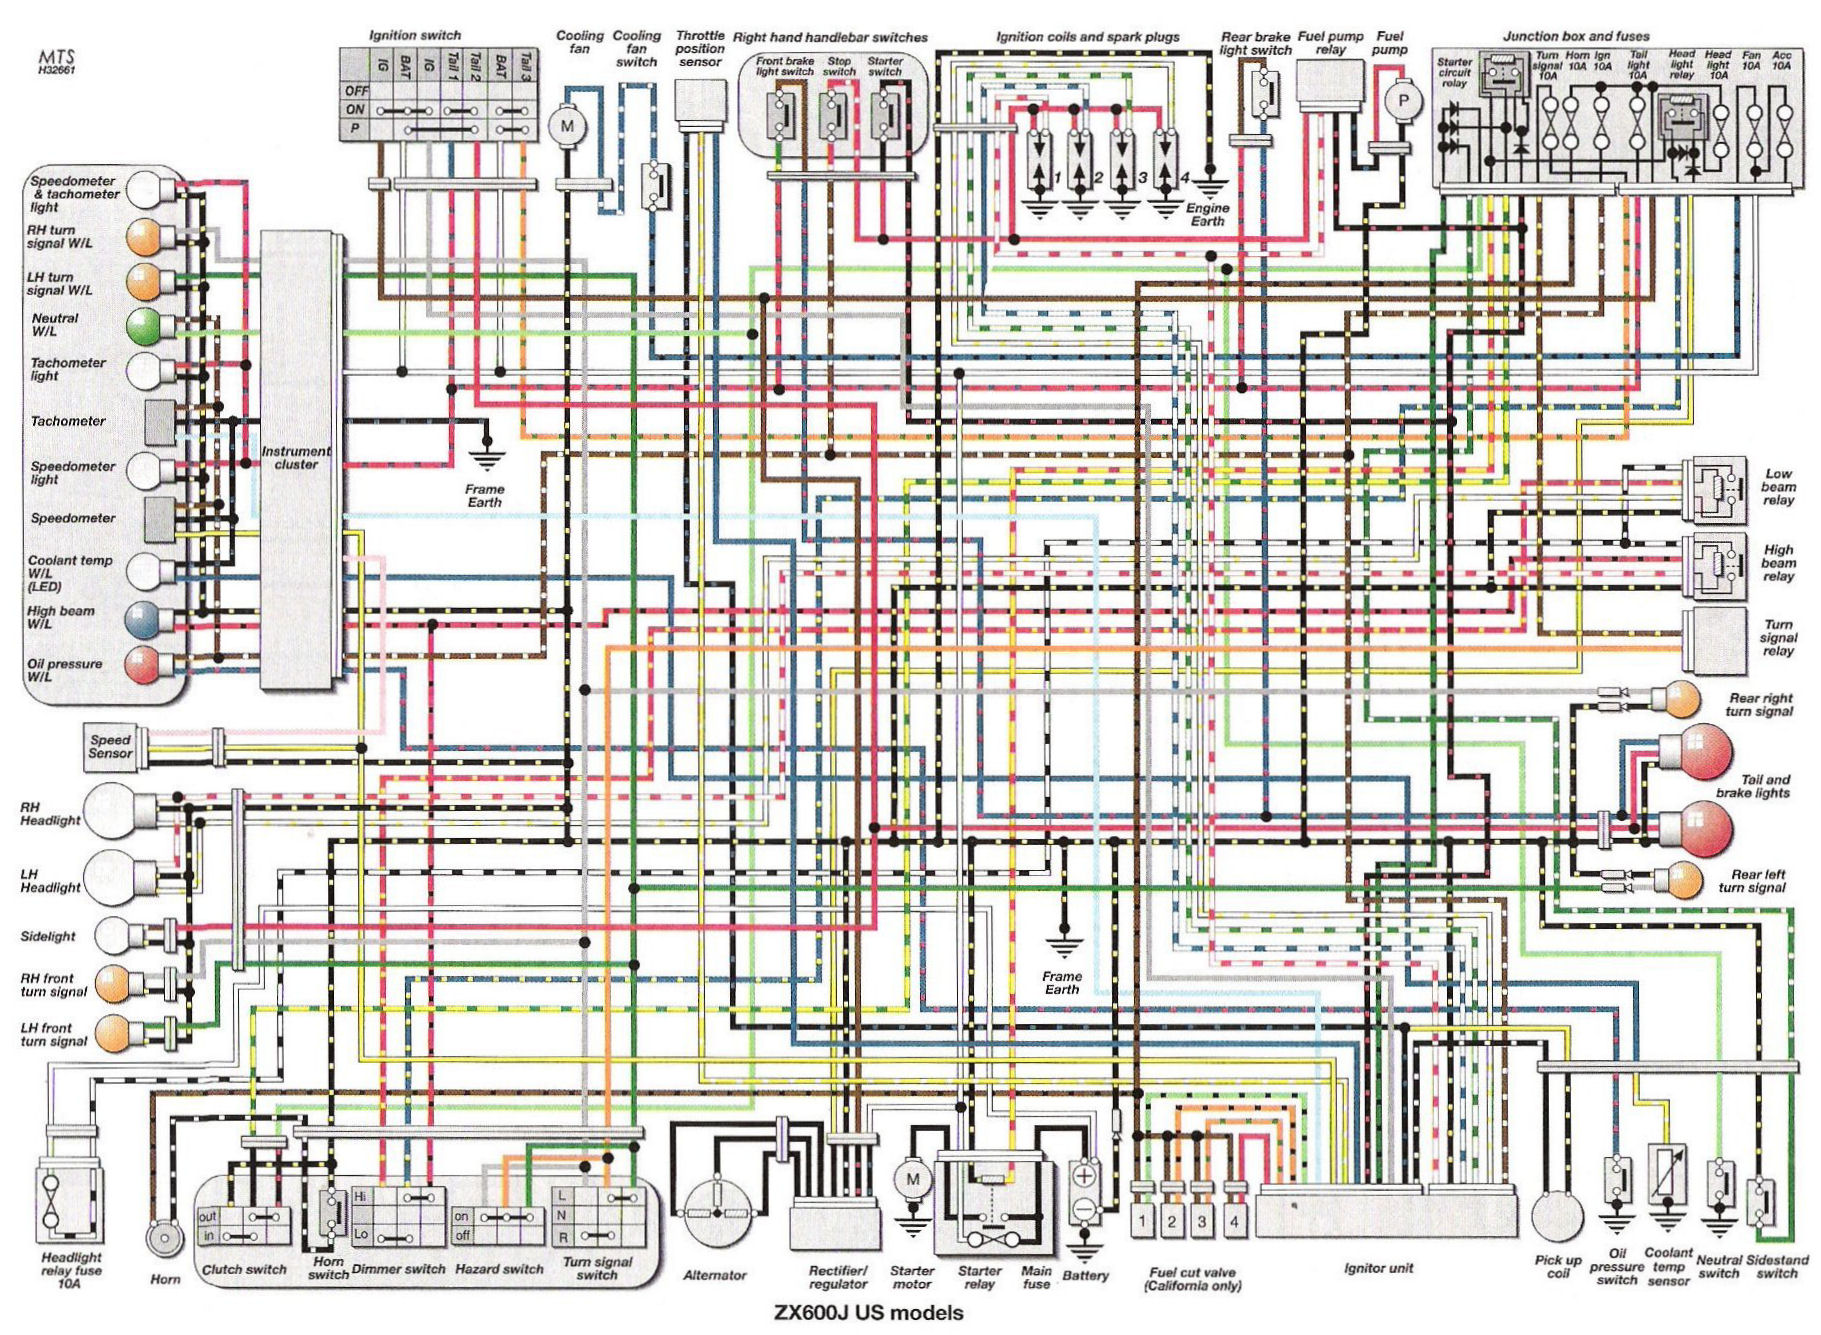 hight resolution of 2000 gsxr 600 wiring diagram wiring schematic data rh 52 american football ausruestung de 2005 gsxr 1000 wiring diagram 2005 suzuki gsxr 600 wiring diagram